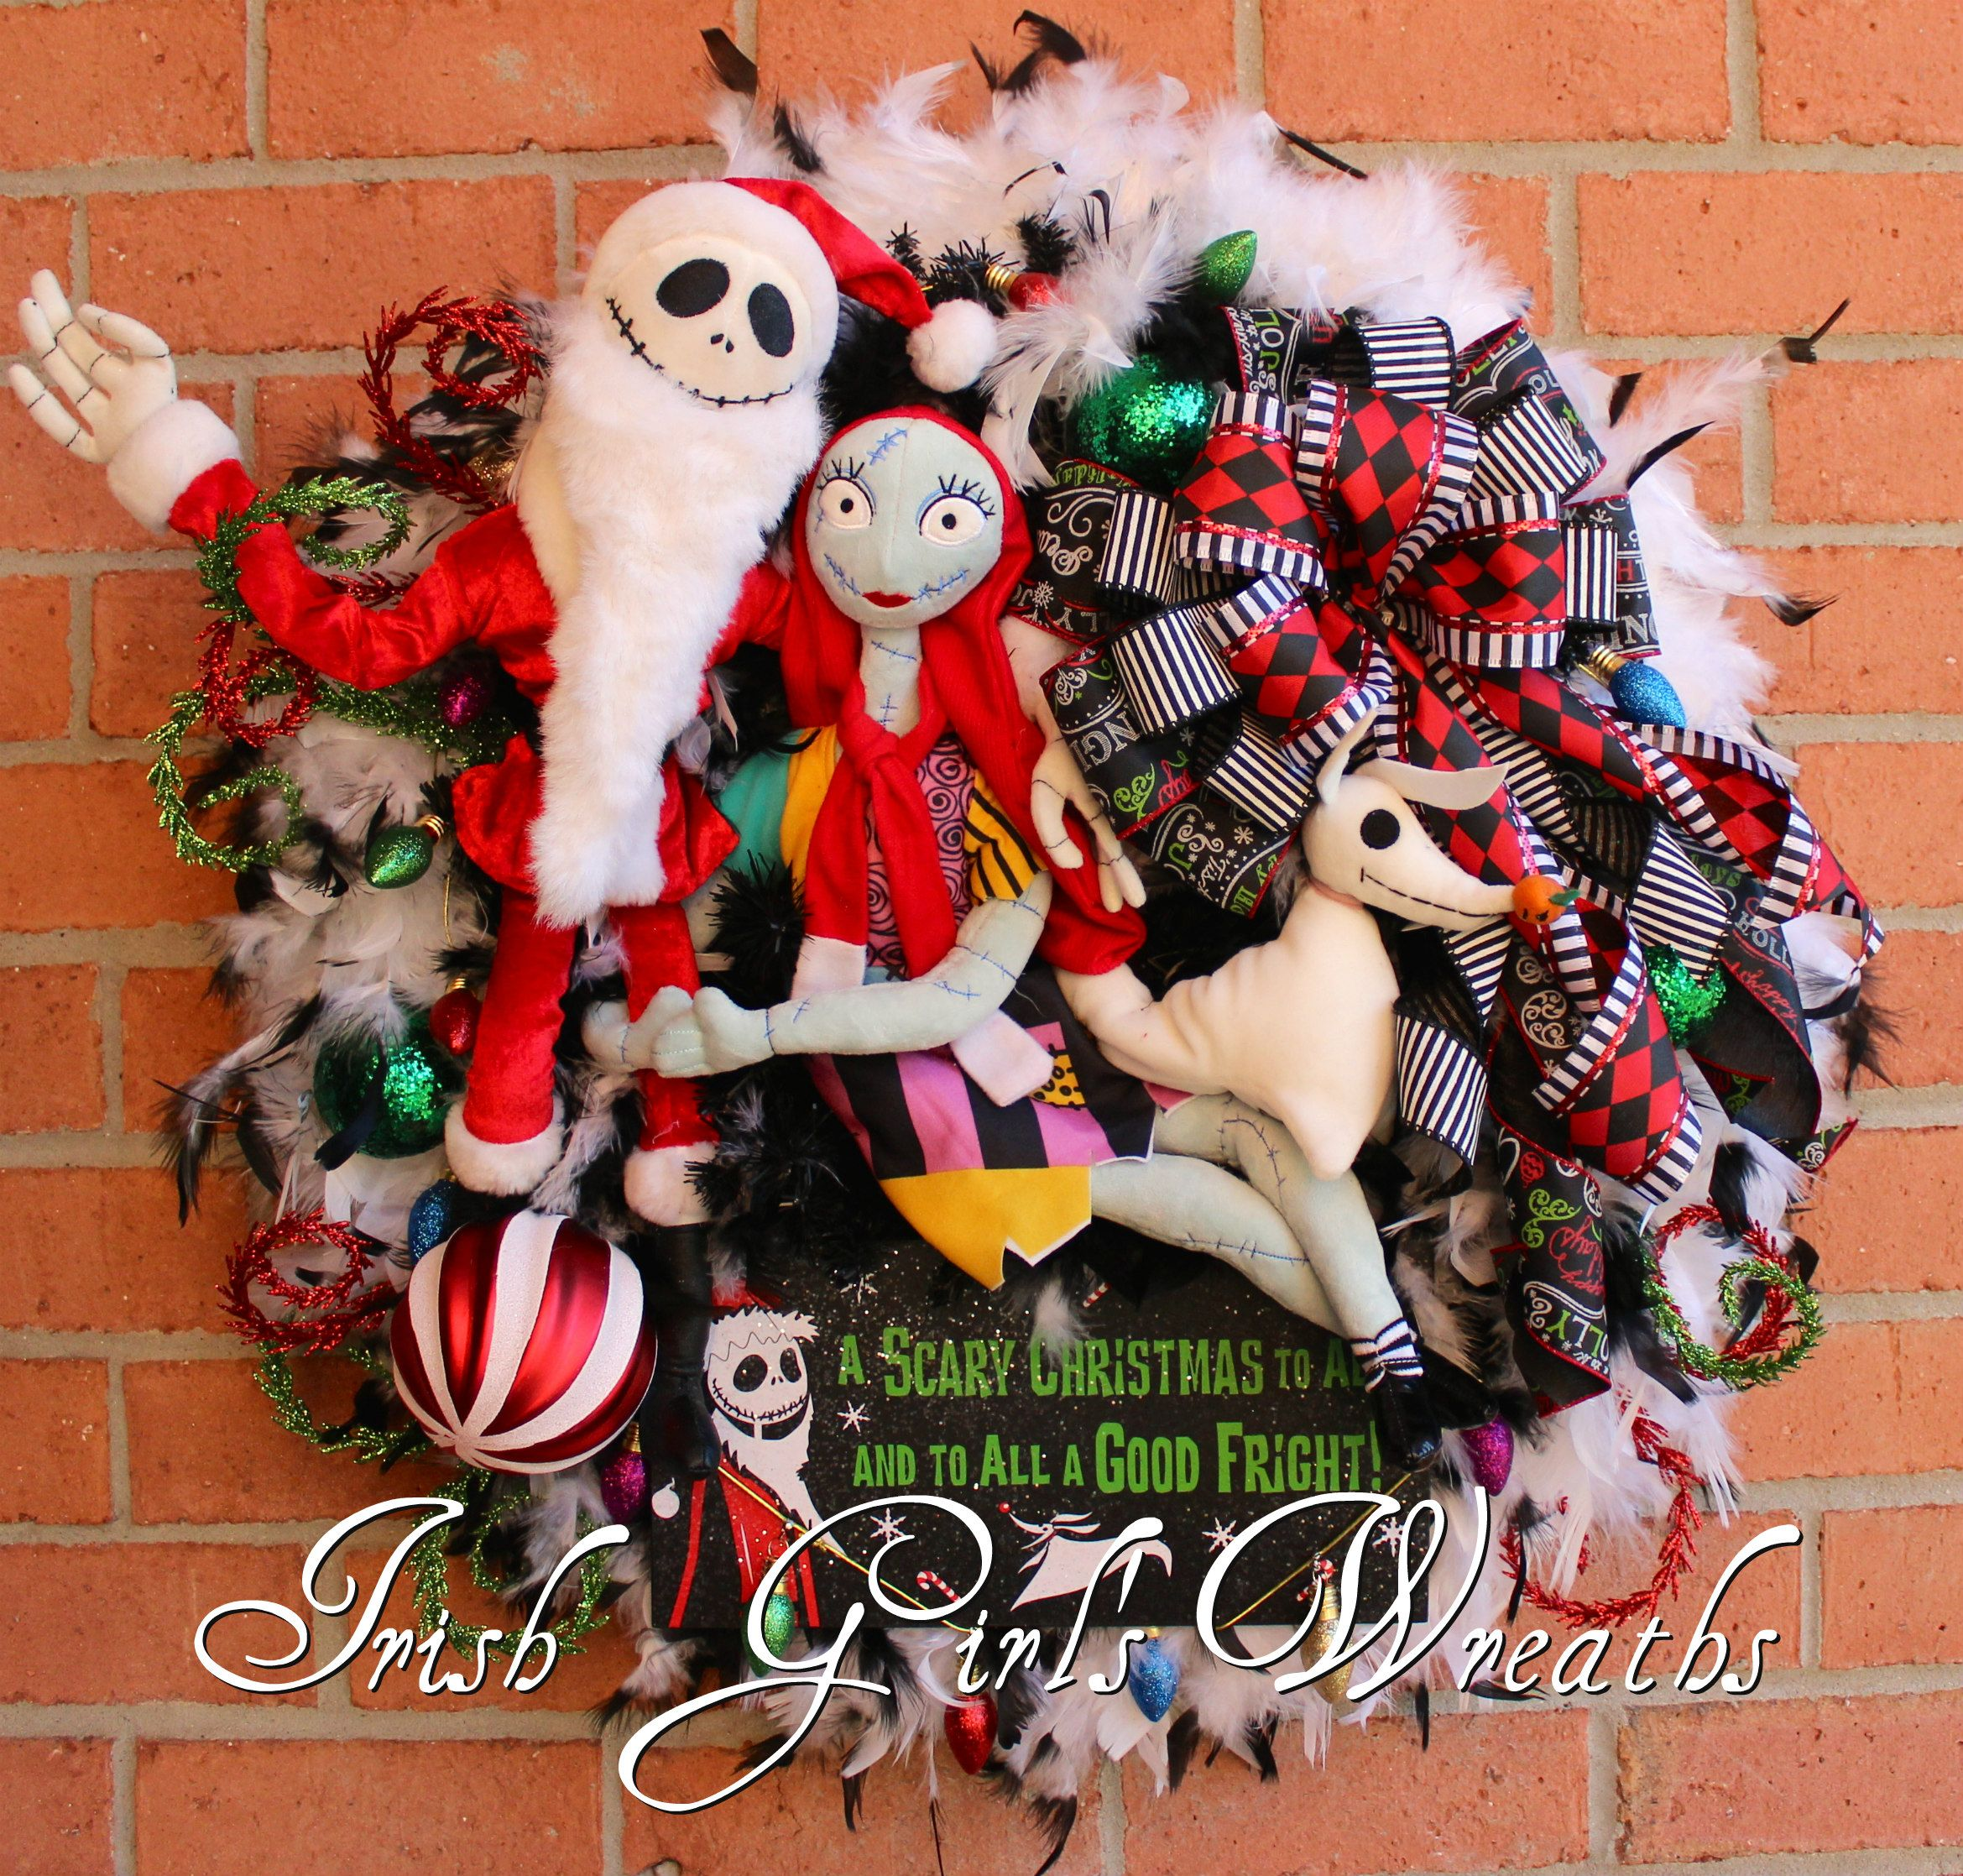 Sandy Claws Wreath Deluxe Nightmare Before Christmas Wreath Jack